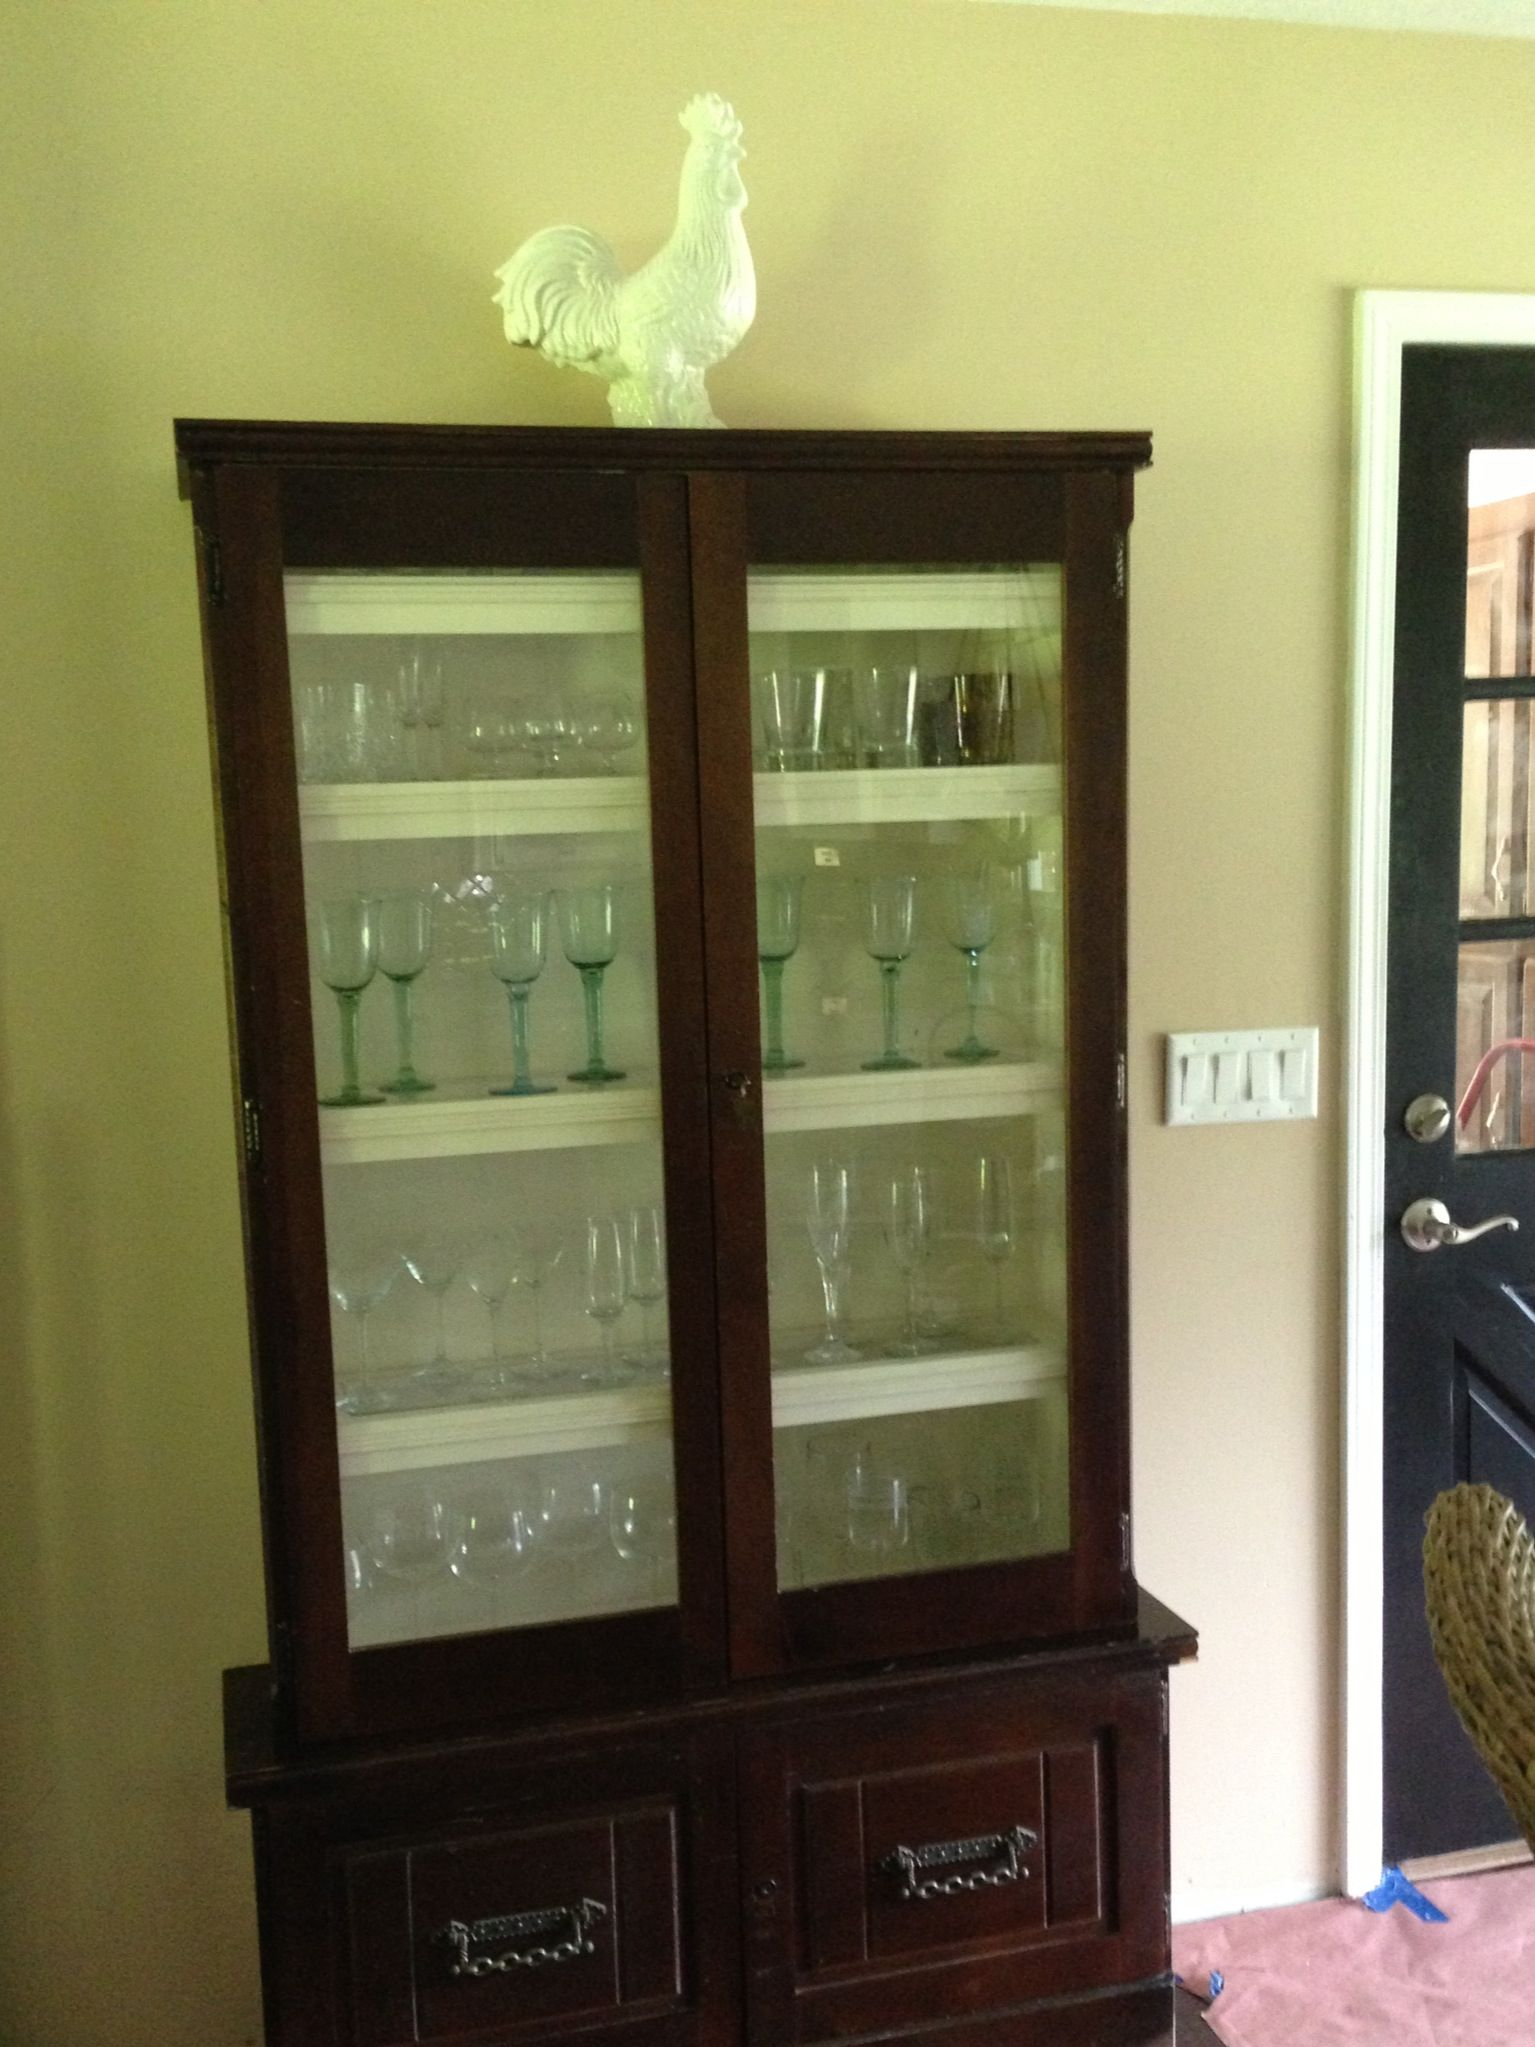 Refurbished gun cabinet into wine glass cabinet! $50 at a